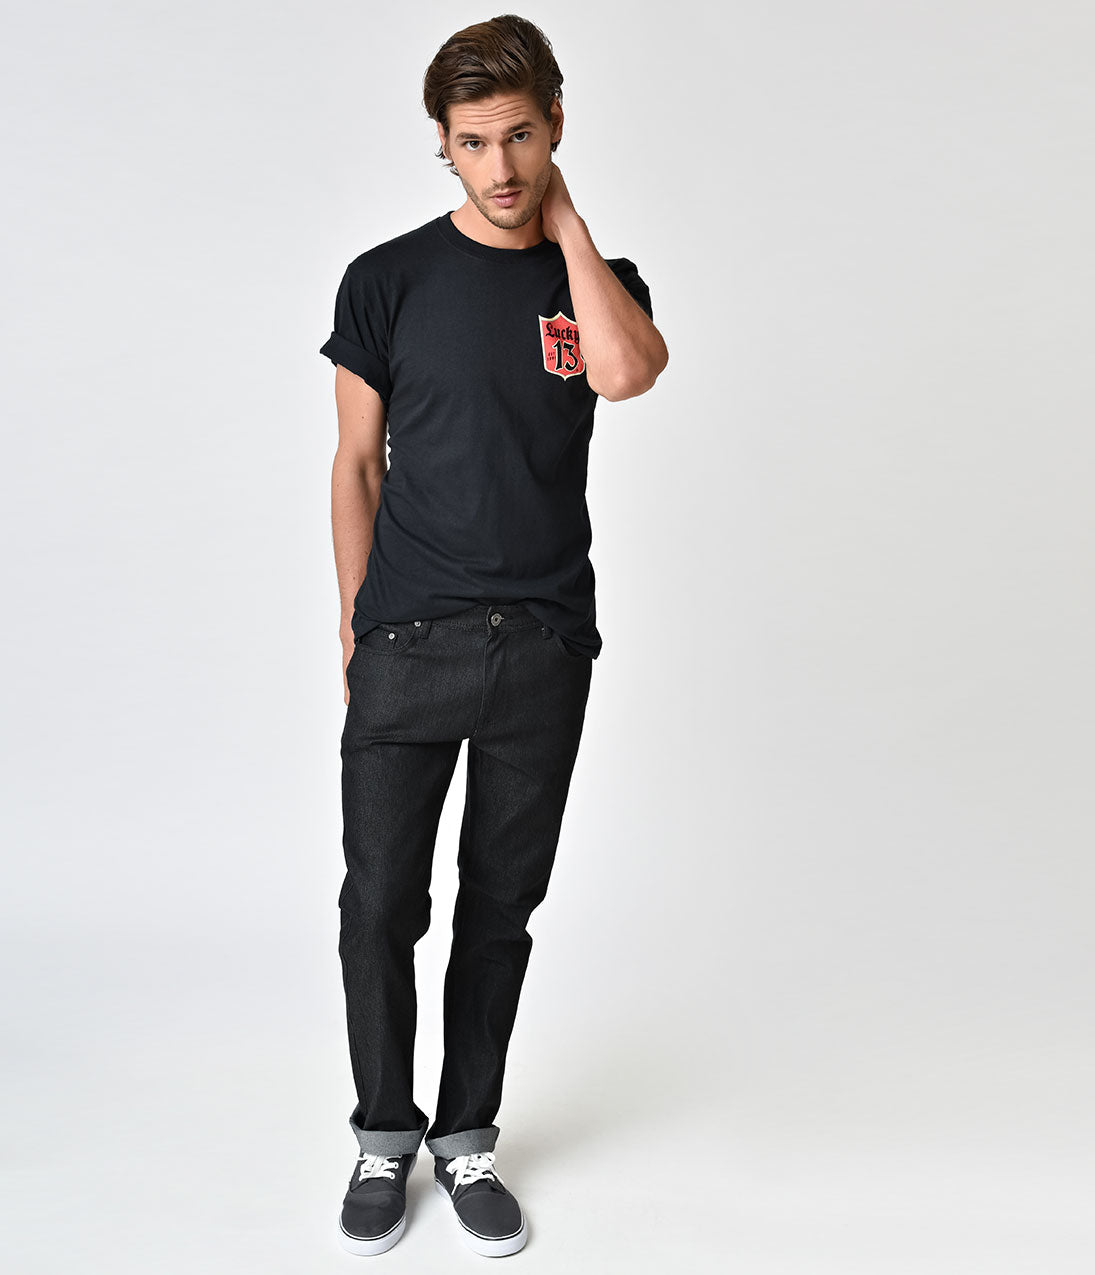 Retro Style Black Denim Mens Jeans Slick and hip, darlings! These retro inspired black denim mens jeans are full of bad boy vibes. A button zipper front and front and back pockets lends vivacious versatility while the rolled cuffs fabulously flatter. We'll try to stay calm. .Available in sizes 30-38 while supplies last. | Retro Style Black Denim Mens Jeans